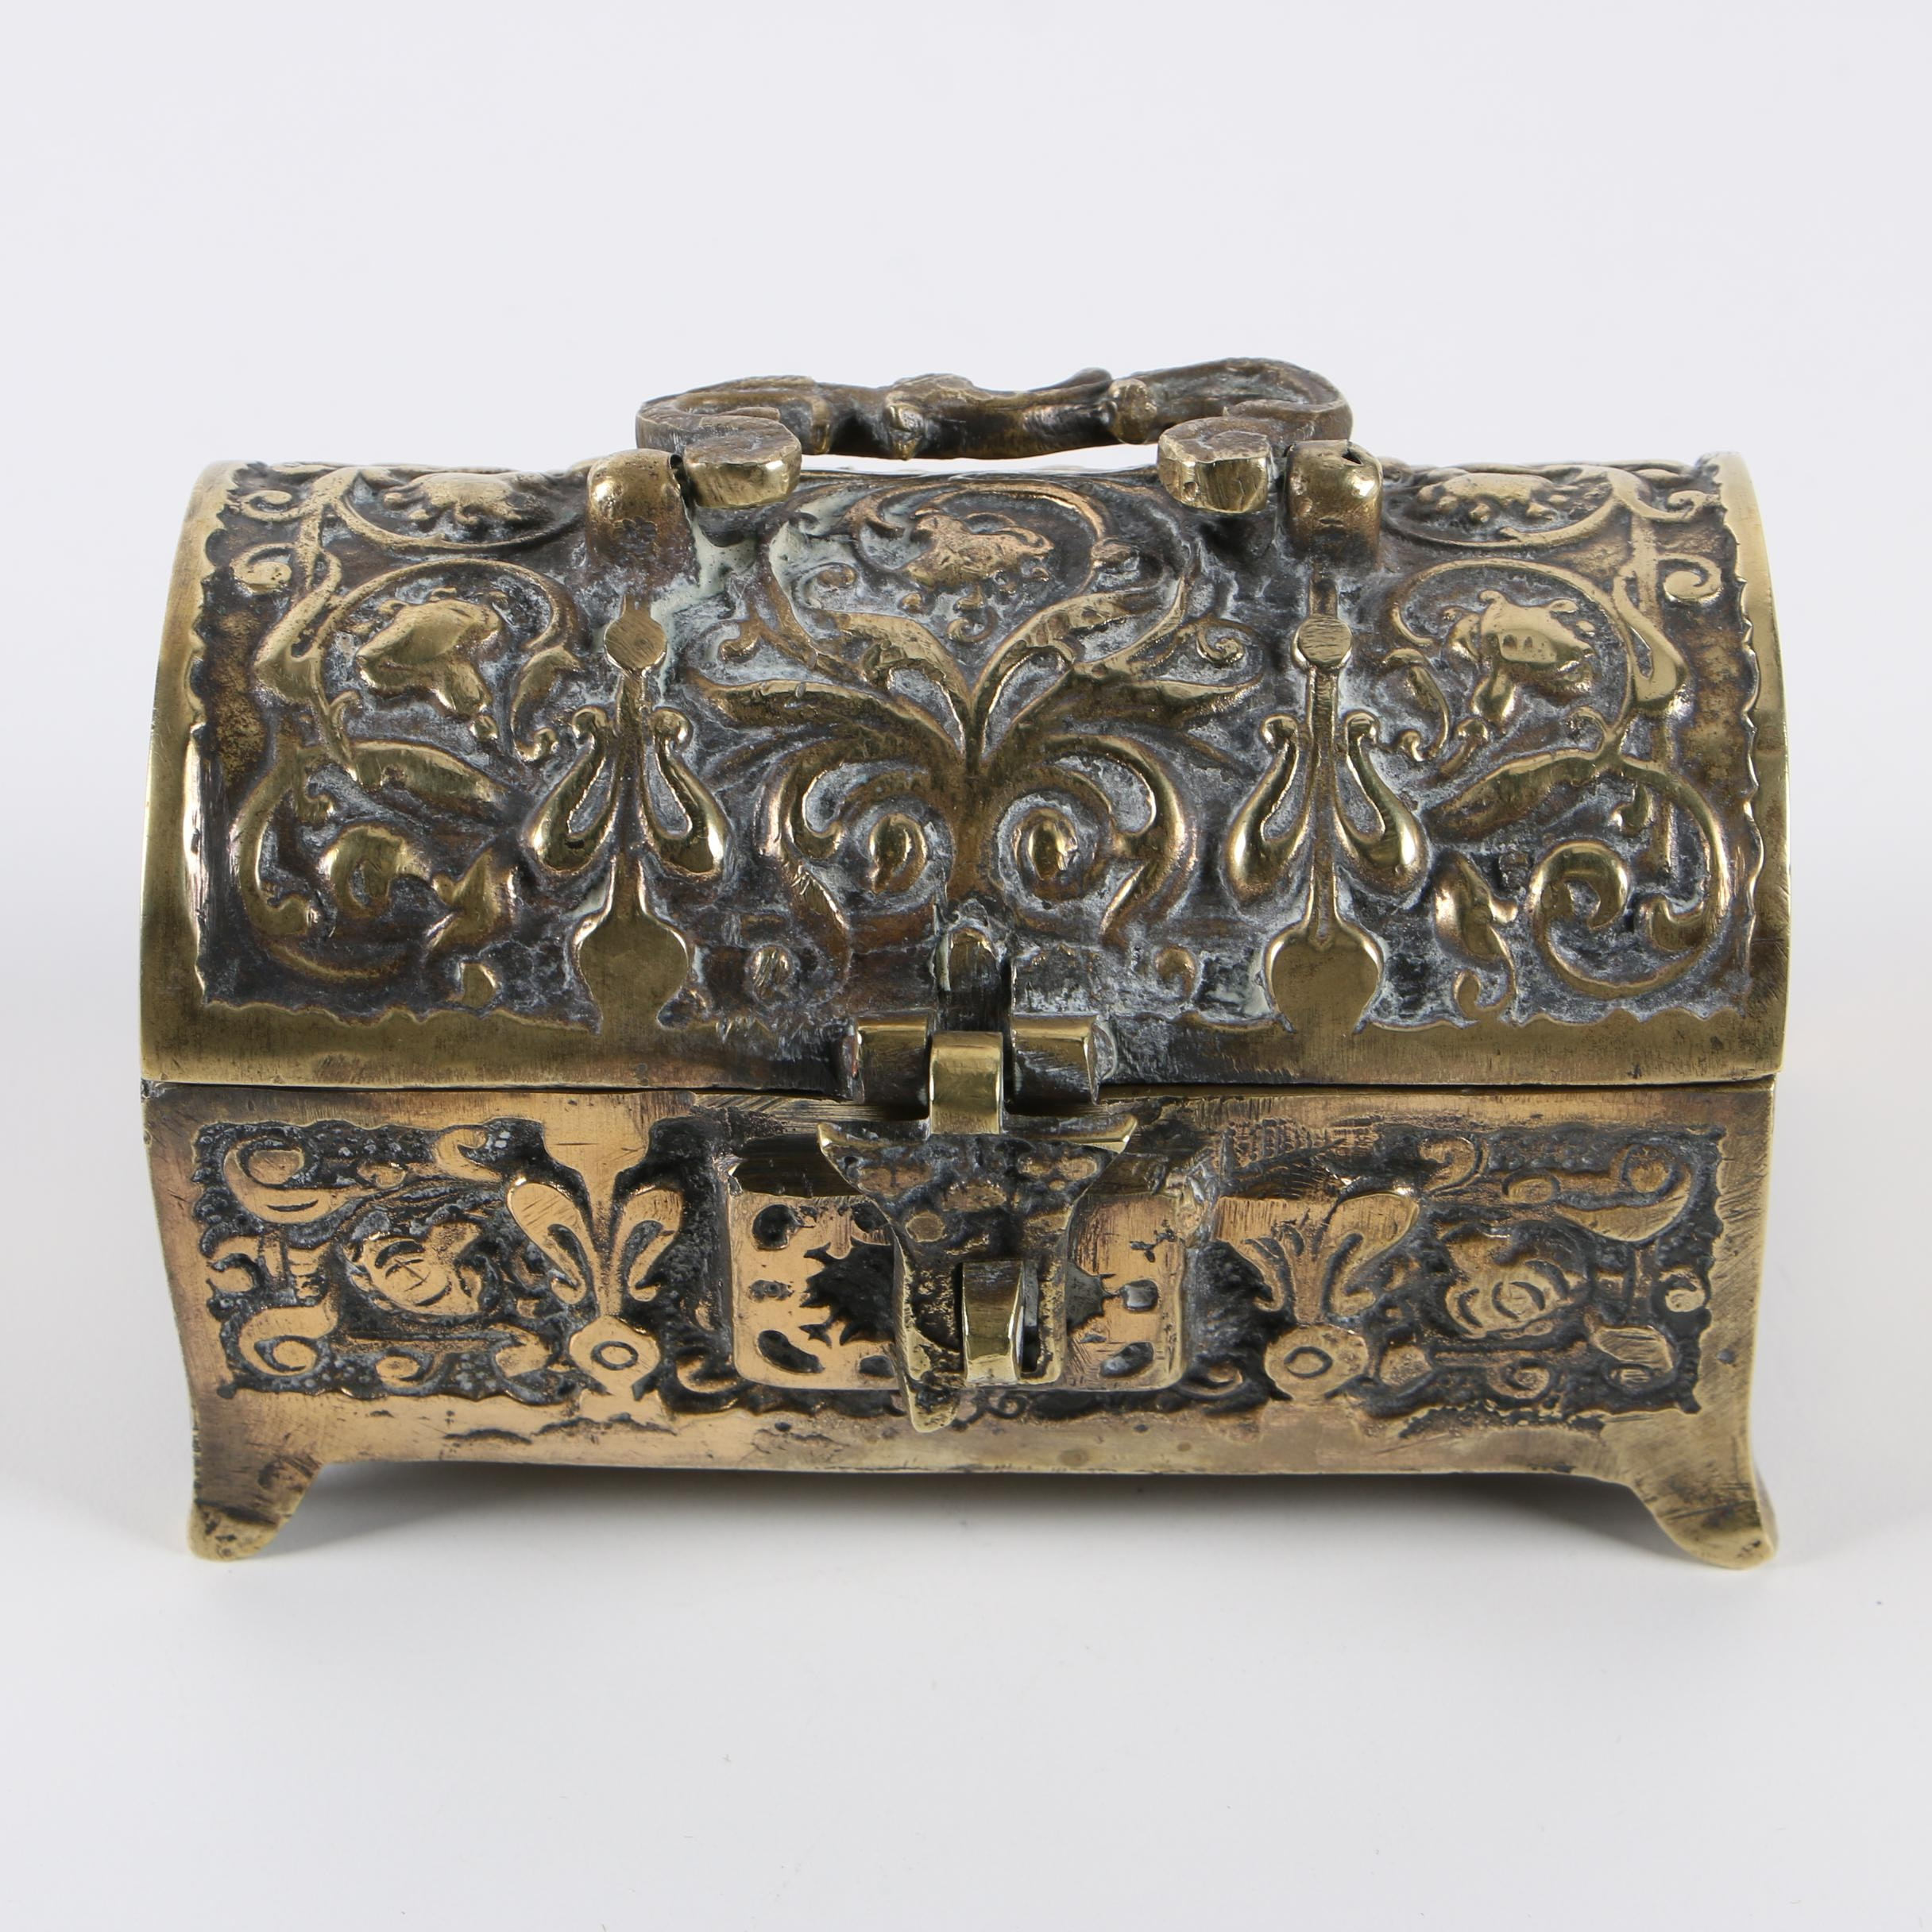 Decorative Cast Brass Curio Box